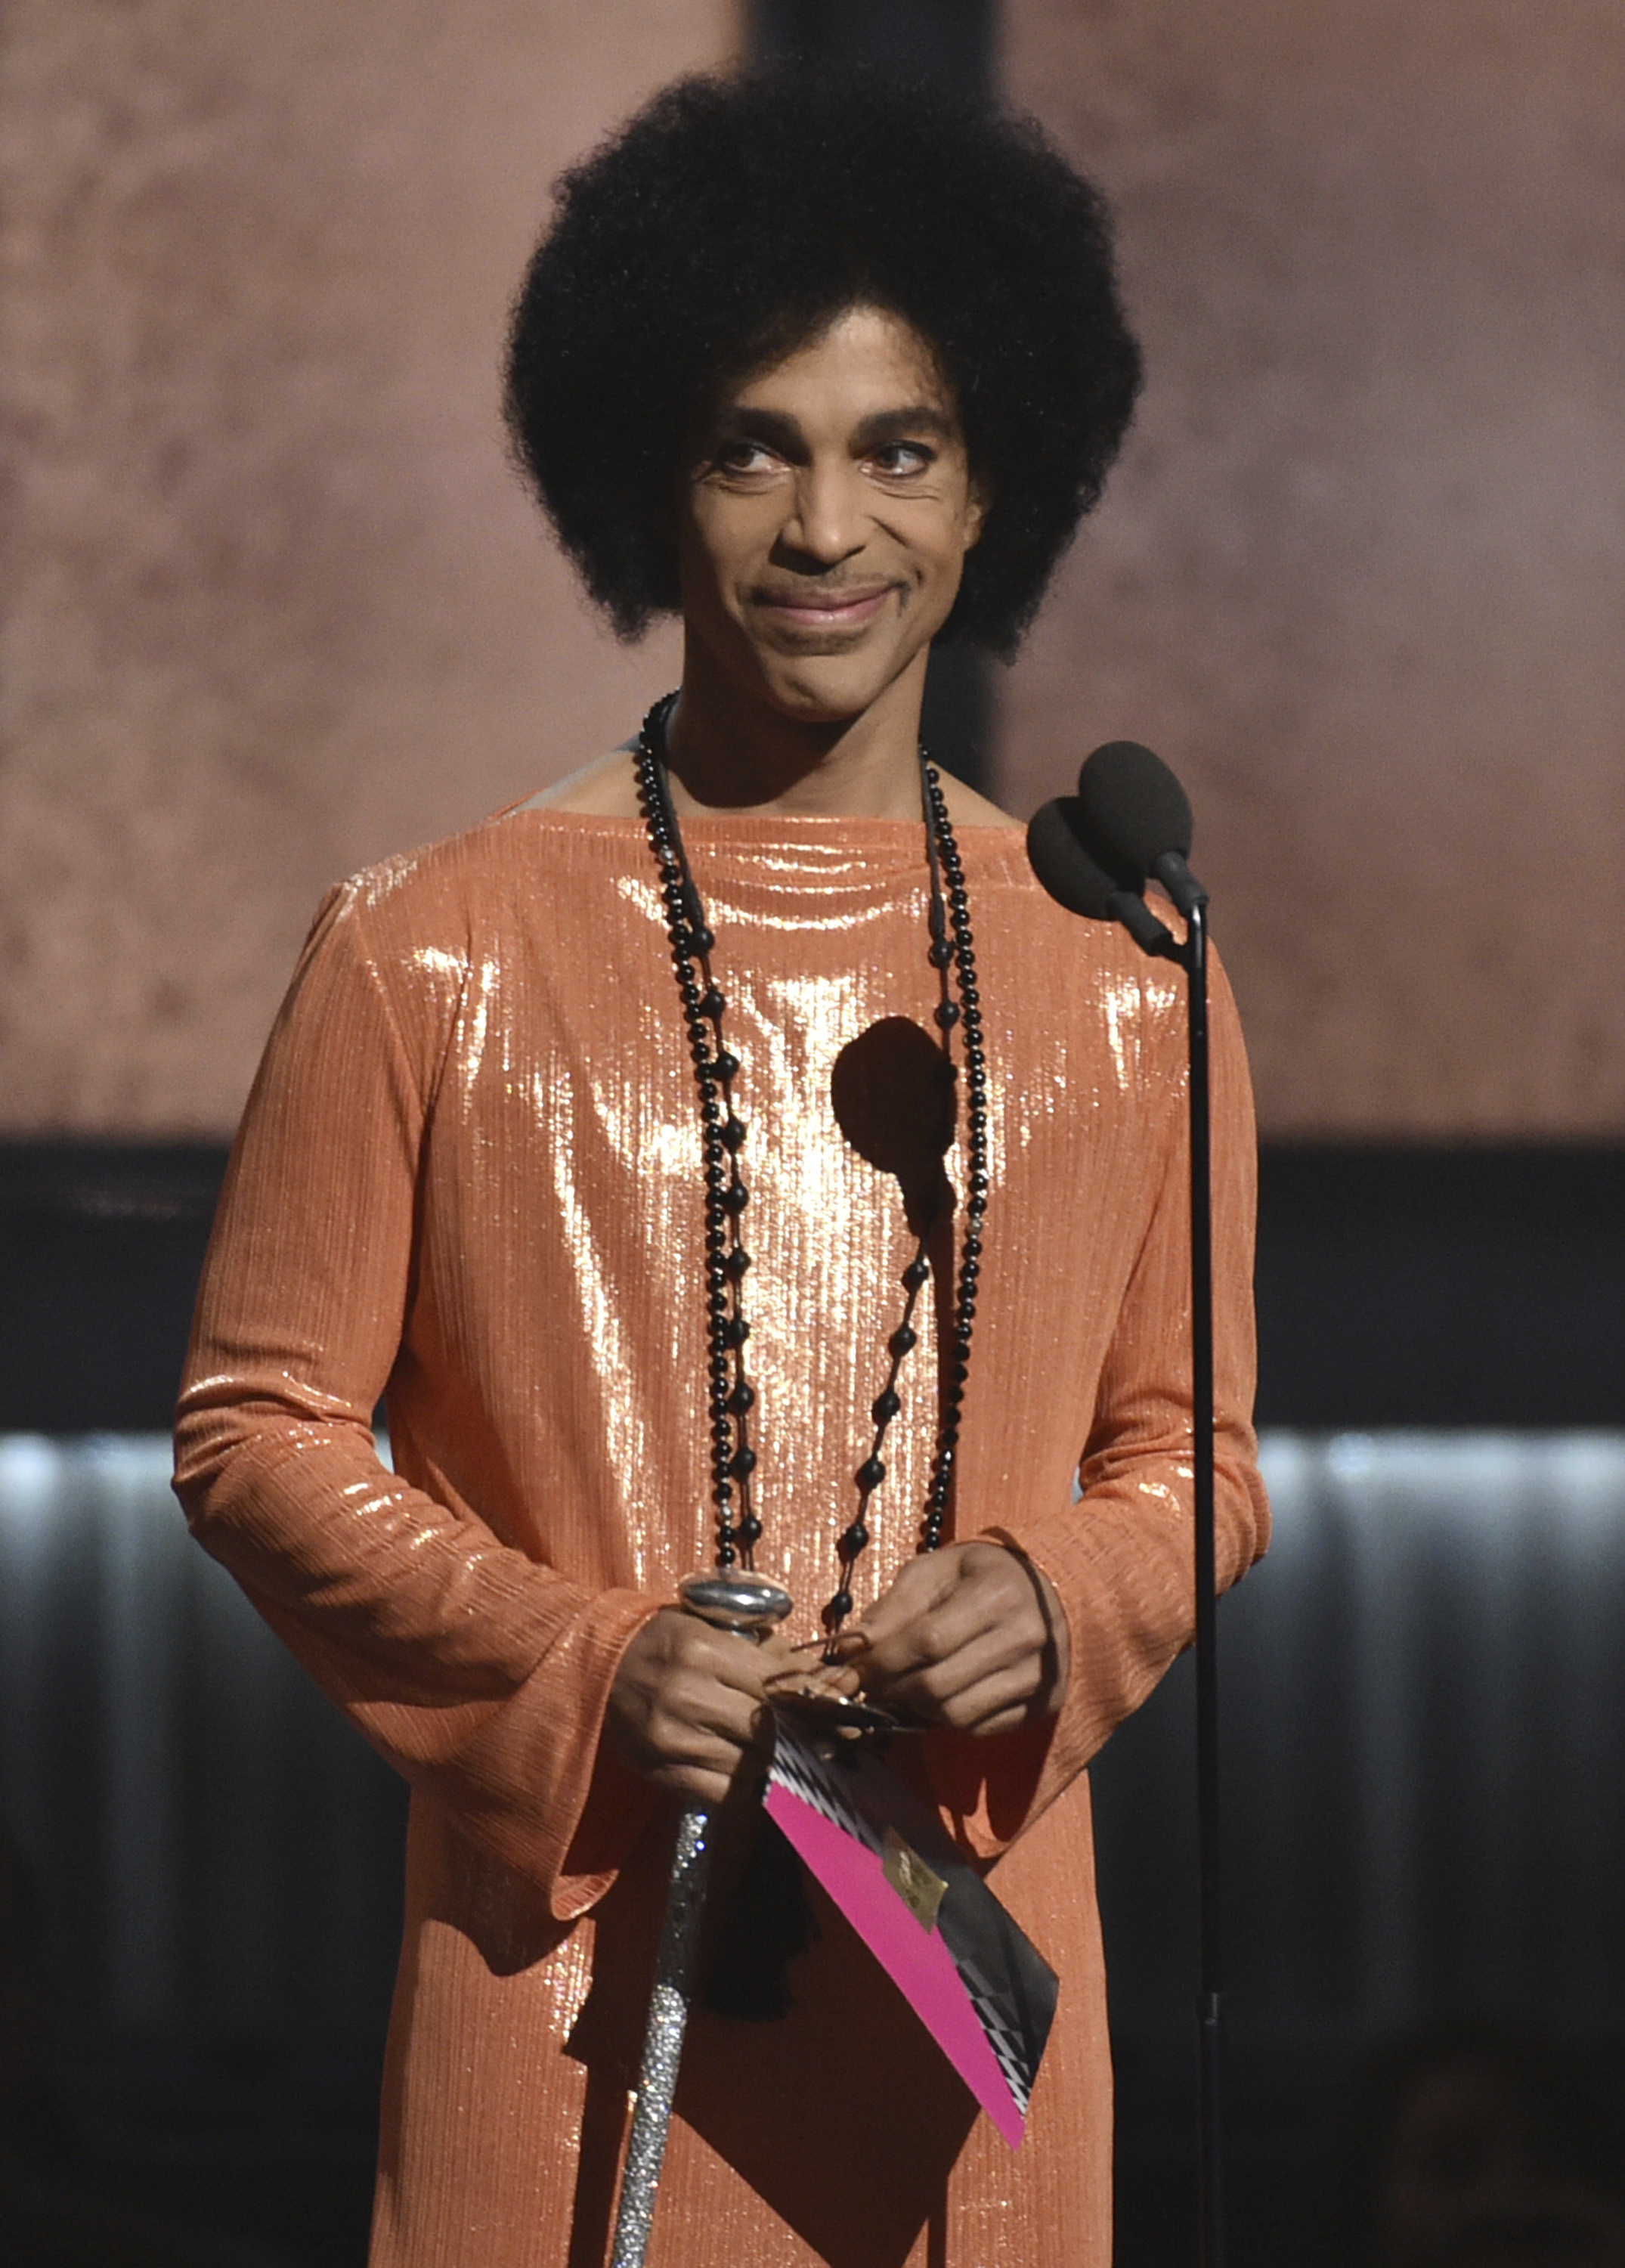 "File-This Feb. 8, 2015, file photo shows  Prince presenting the award for album of the year at the 57th annual Grammy Awards in Los Angeles. Prince didn't have an orange crush, purple was his favorite color, according to his half-sister.                  Sharon Nelson says in a statement Thursday, Aug. 31, 2017, to The Associated Press that ""contrary to what has been said, purple was and is Prince's color."" Tyka Nelson, Prince's only full sibling, told the London Evening Standard in a story published Aug. 21 that though people associate purple with the singer, his favorite color was orange. (Photo by John Shearer/Invision/AP, File)"